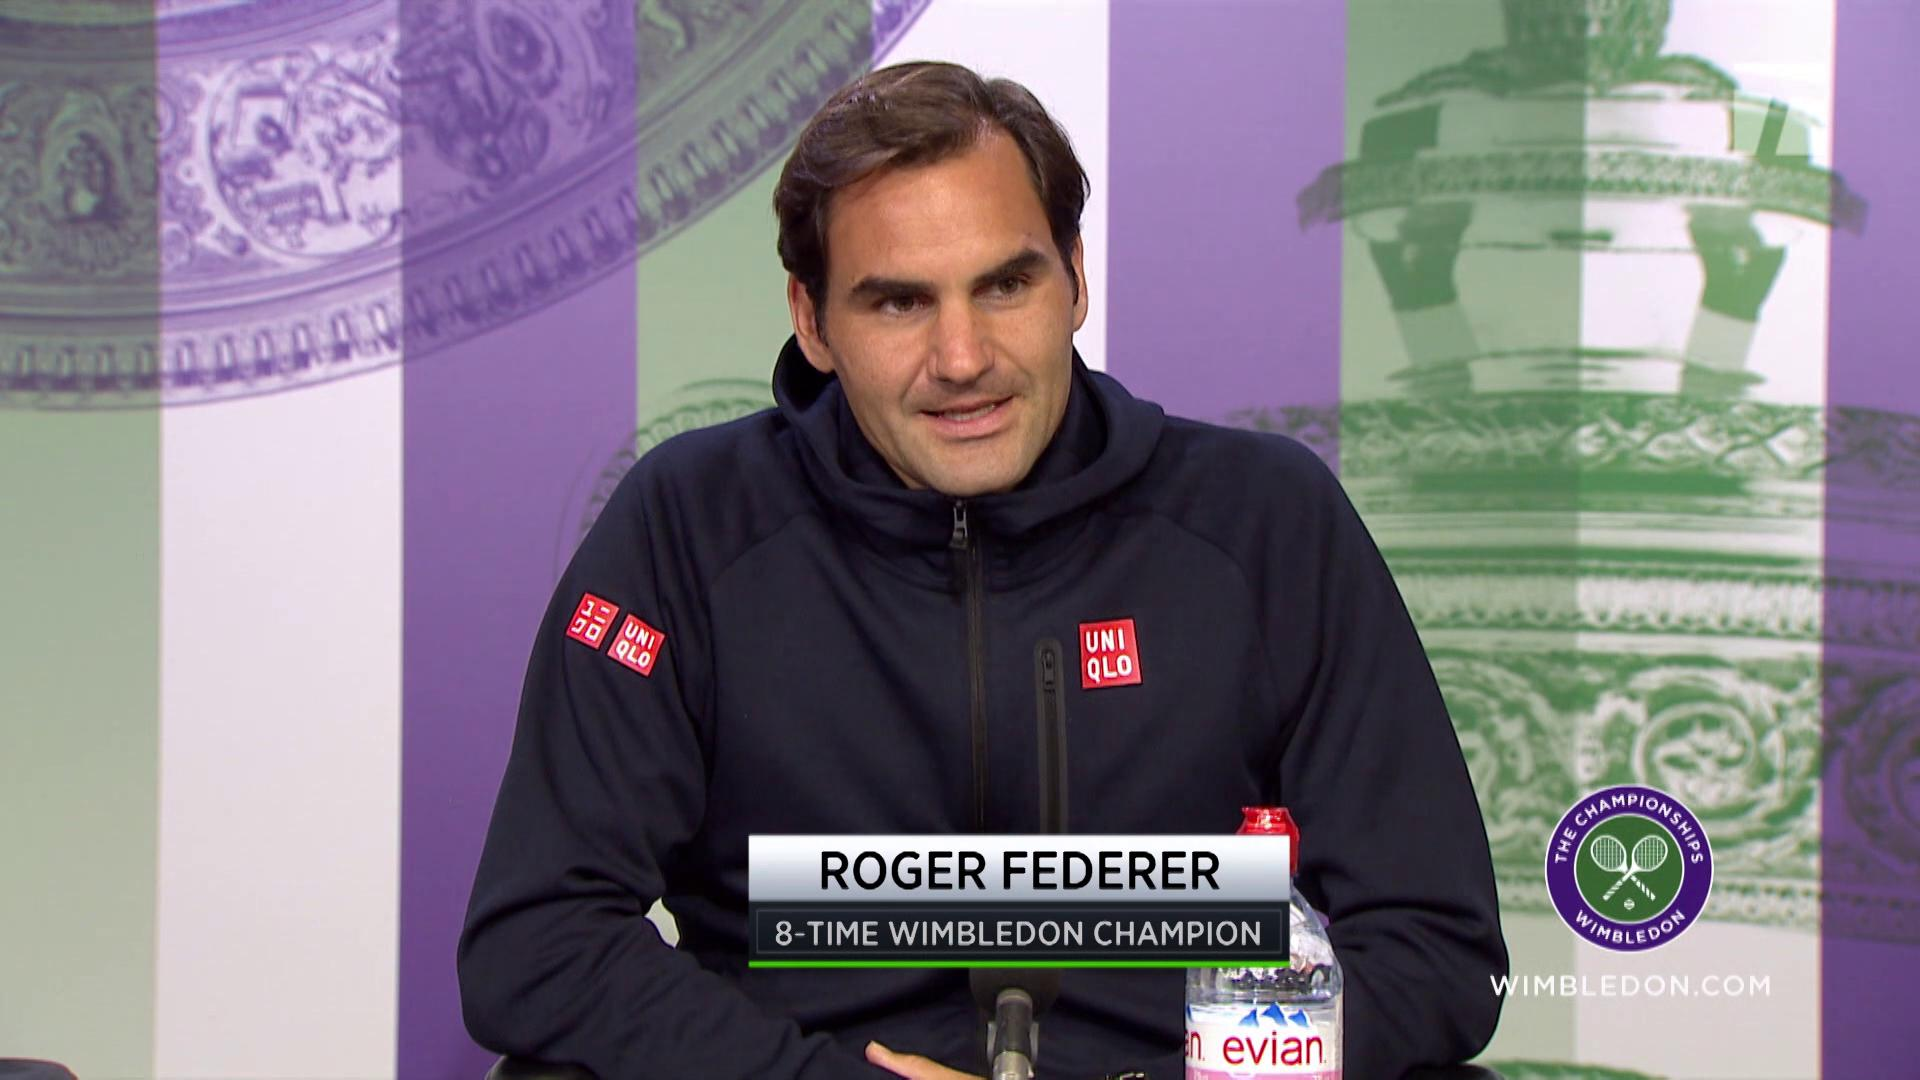 sale retailer 1d99d bf36f The Future of Federer  Why Roger made the switch from Nike to Uniqlo    TENNIS.com - Live Scores, News, Player Rankings